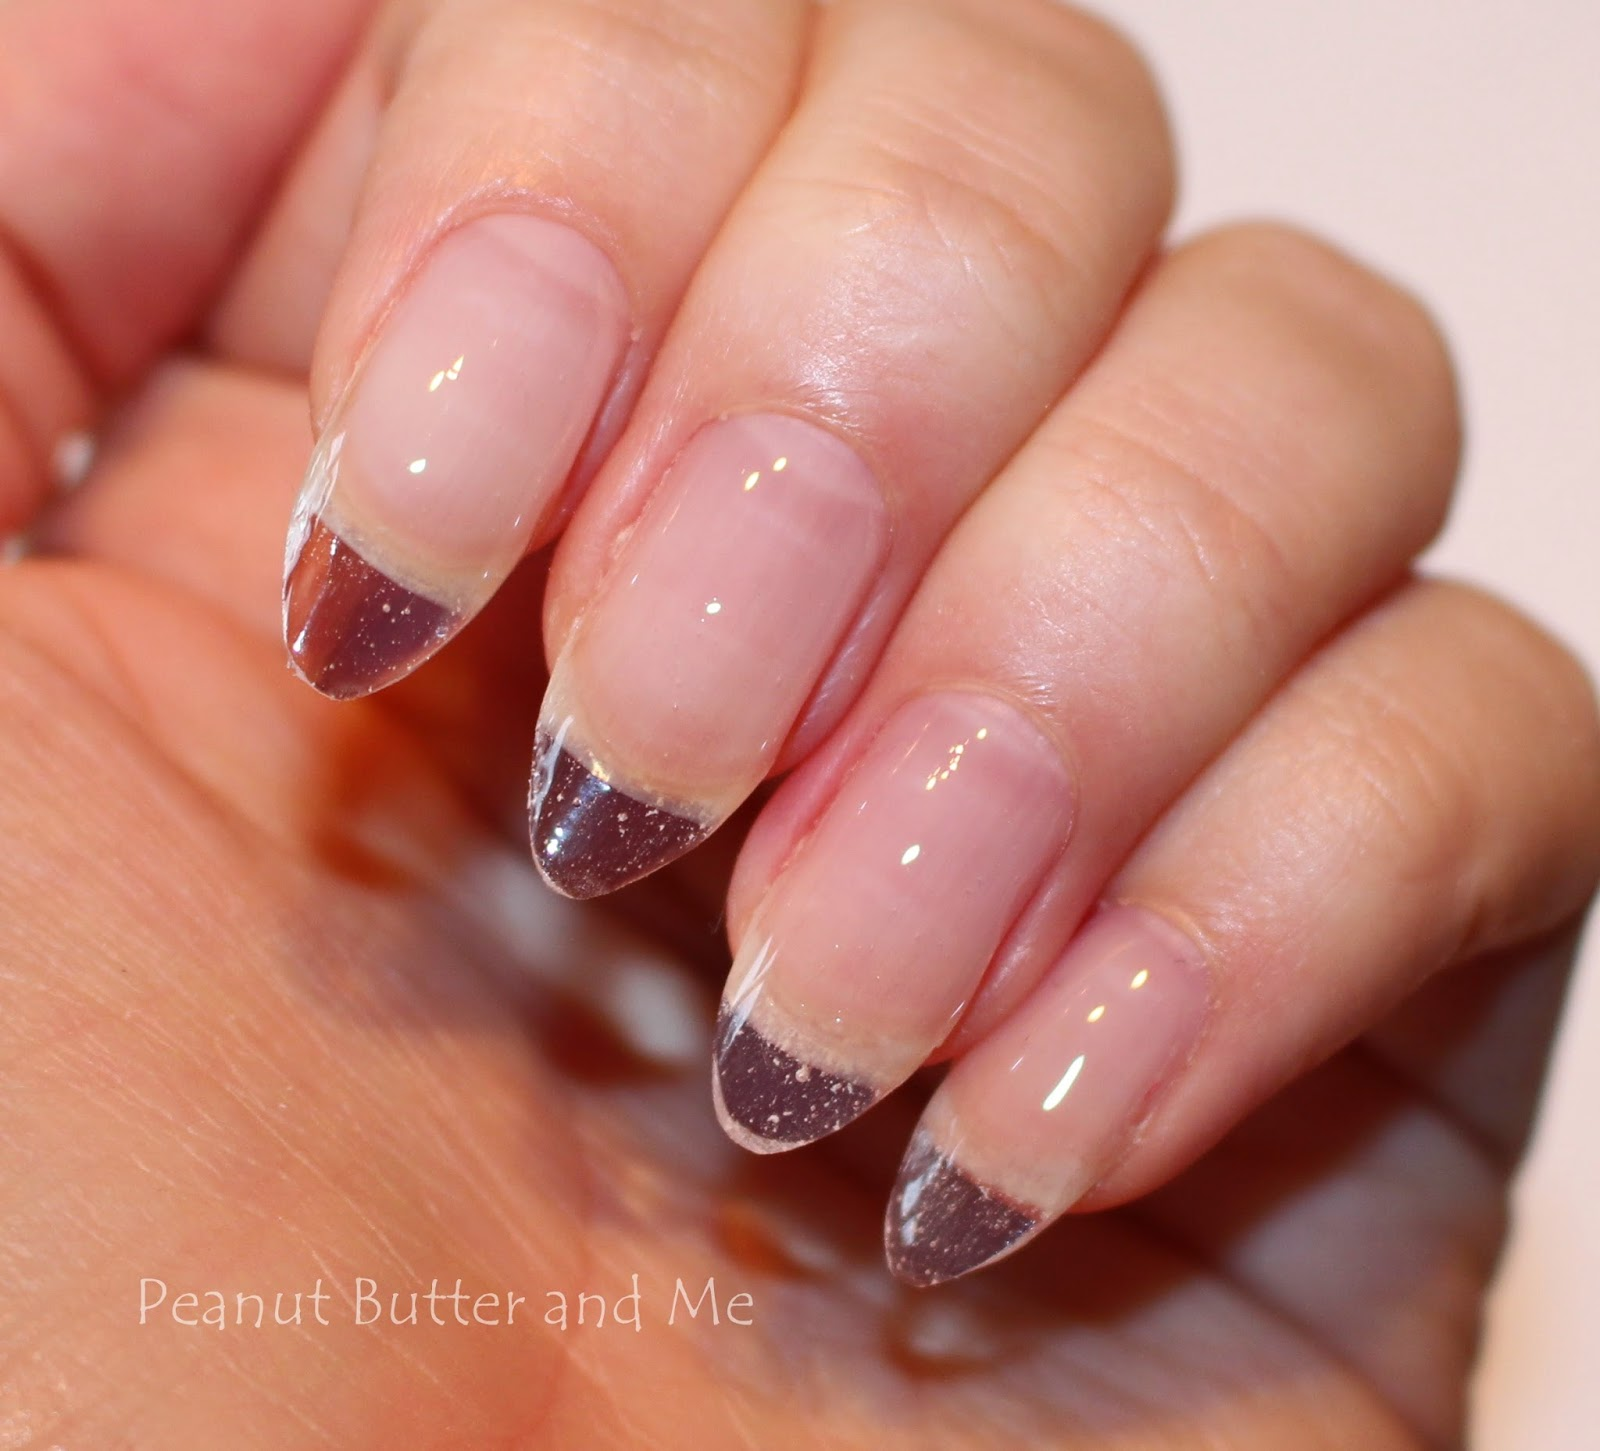 Semilac Hard almond nails shape nude classic elegant clean nail natural perfect gel hybrydy hybryda bezbarwny fake nails polish Semilac Hard żelowe paznokcie fake nails polish lakier UV gdzie kupić jak zrobić diamond cosmetics Poznań poland long plastic instagram hola paola